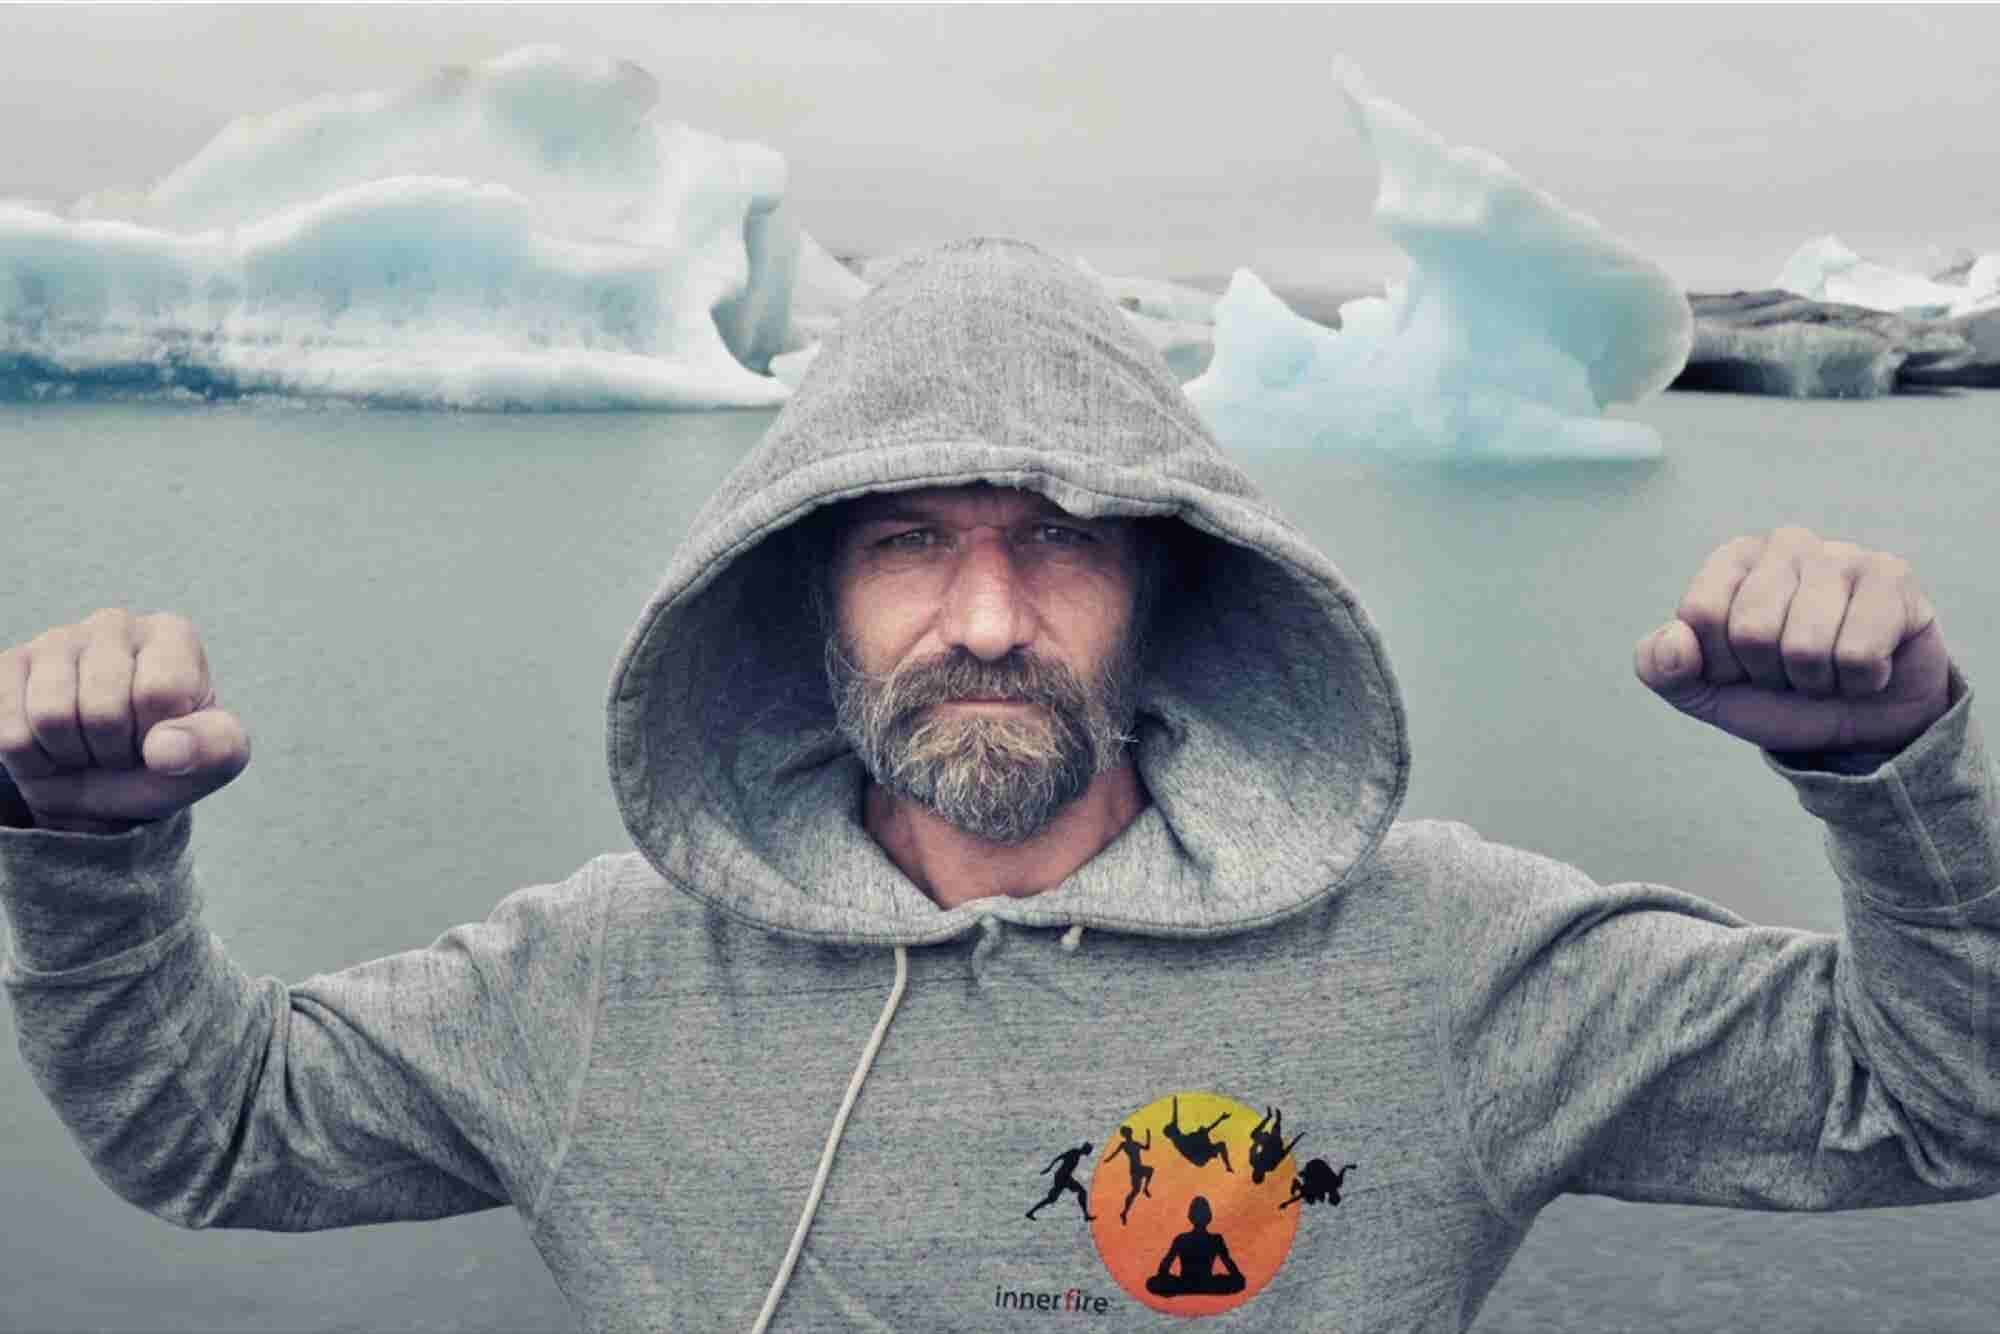 A Mad Method by an 'Iceman' That Can Strengthen Your Mind and Body